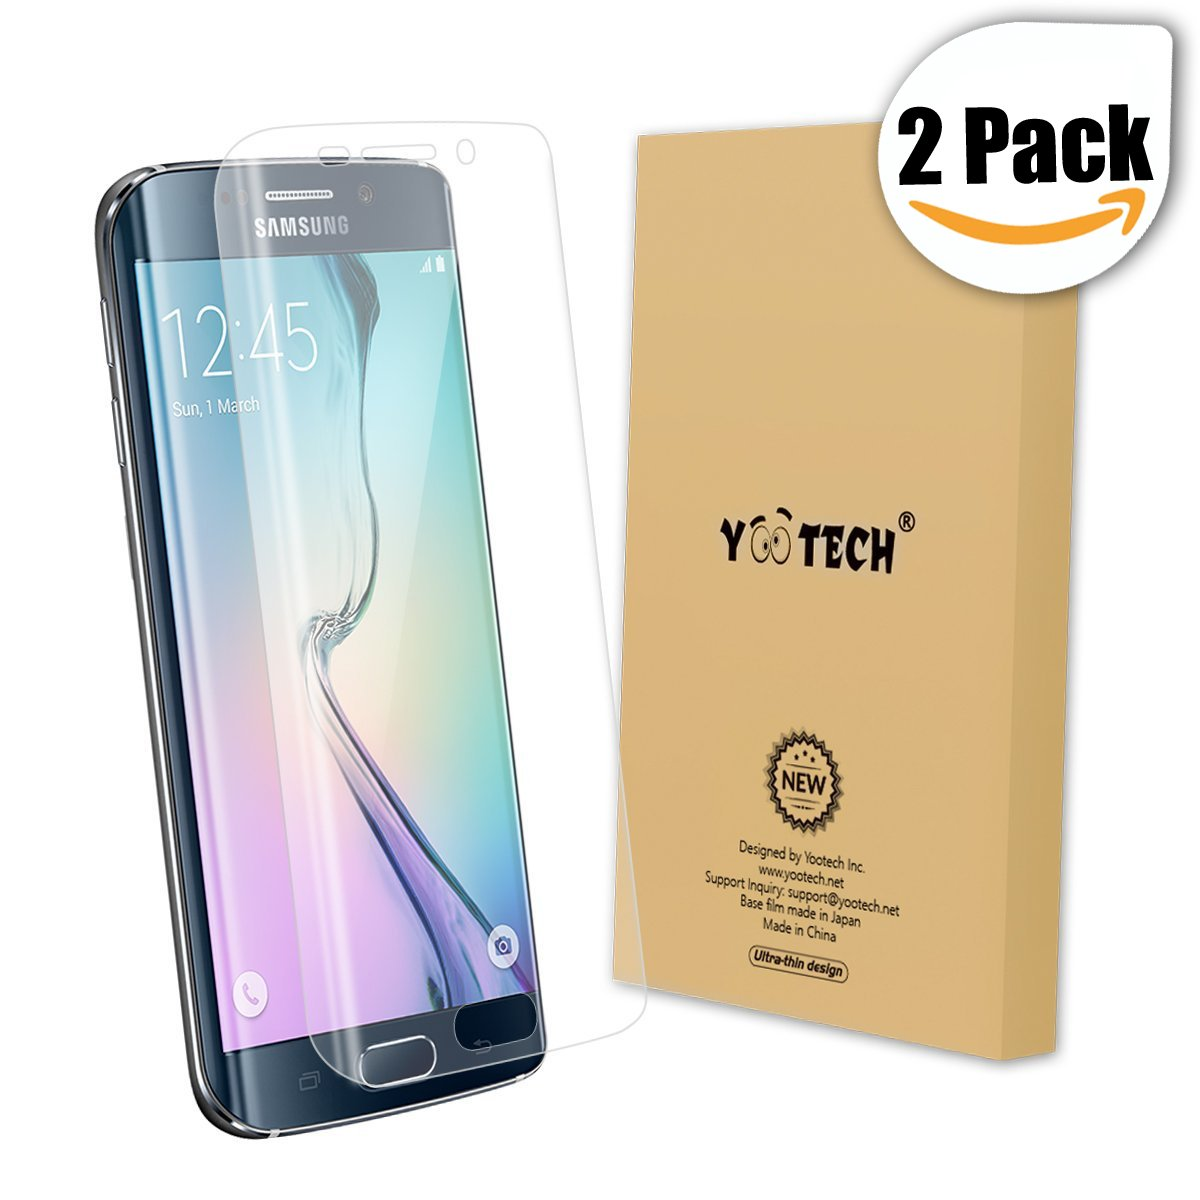 Galaxy S6 Edge Screen Protector,Yootech [2-Pack] Samsung Galaxy S6 Edge Screen Protector, Premium HD Clear Film with Free Lifetime Replacement Warranty